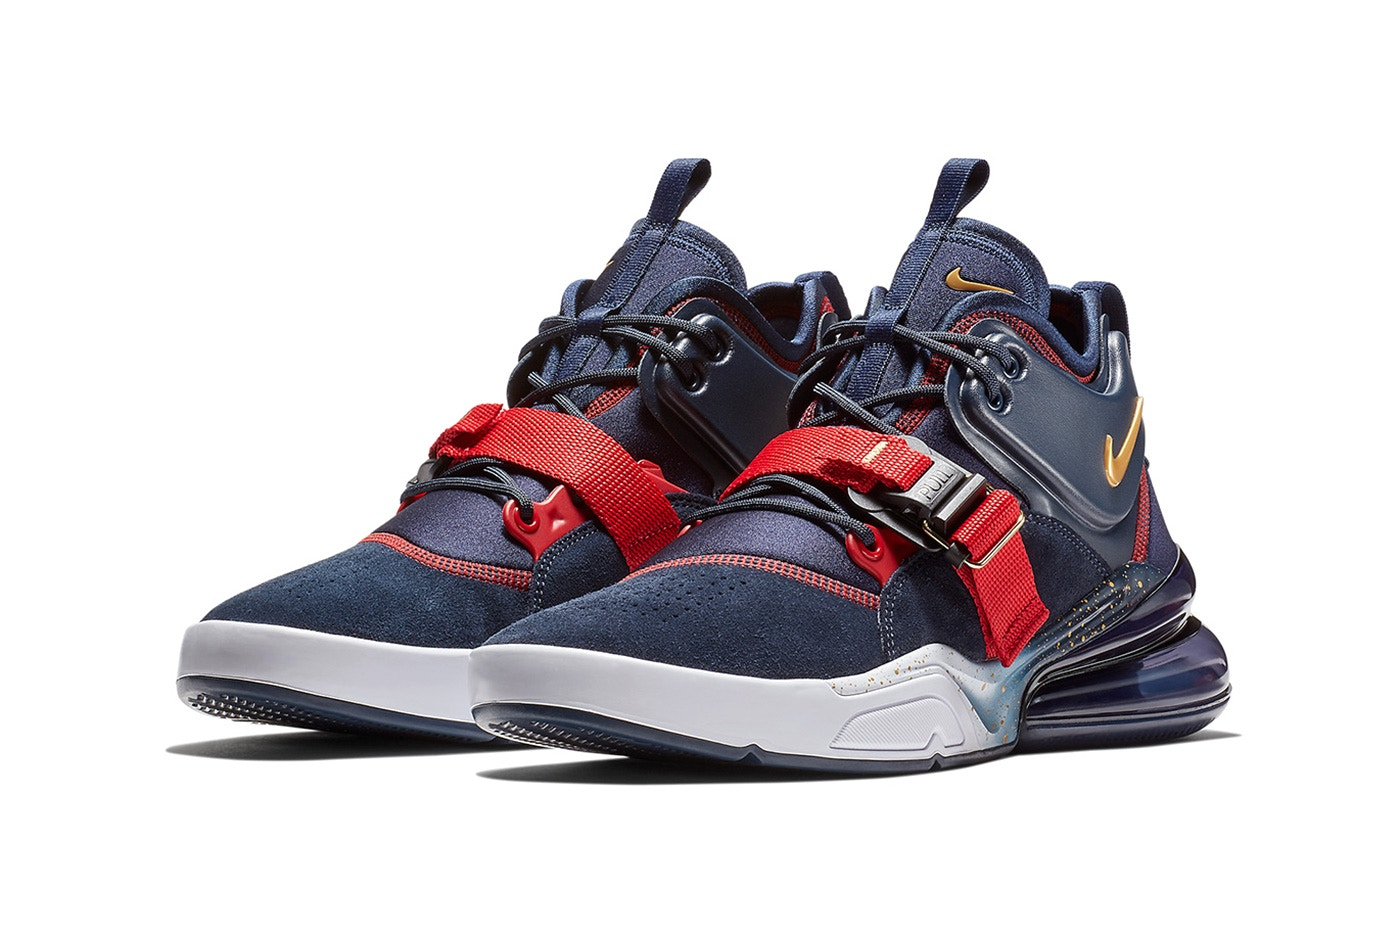 ce08347095 netherlands nike air force 270 safari black hyper crimson a4860 f7ae4;  clearance there is not yet an official date but the release of the nike air  force